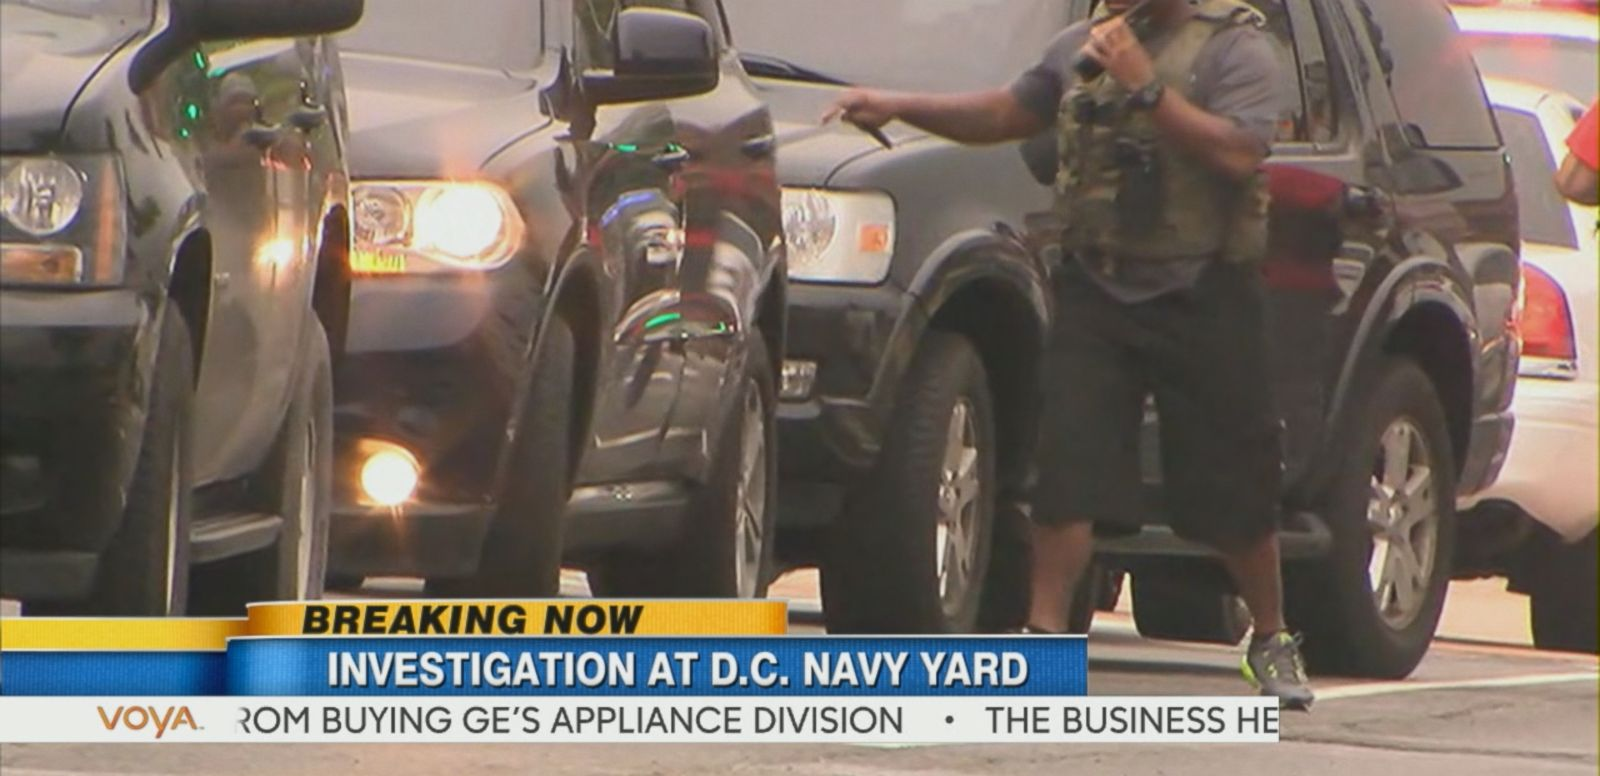 VIDEO: Washington Navy Yard on Lockdown After Reports of Active Shooter